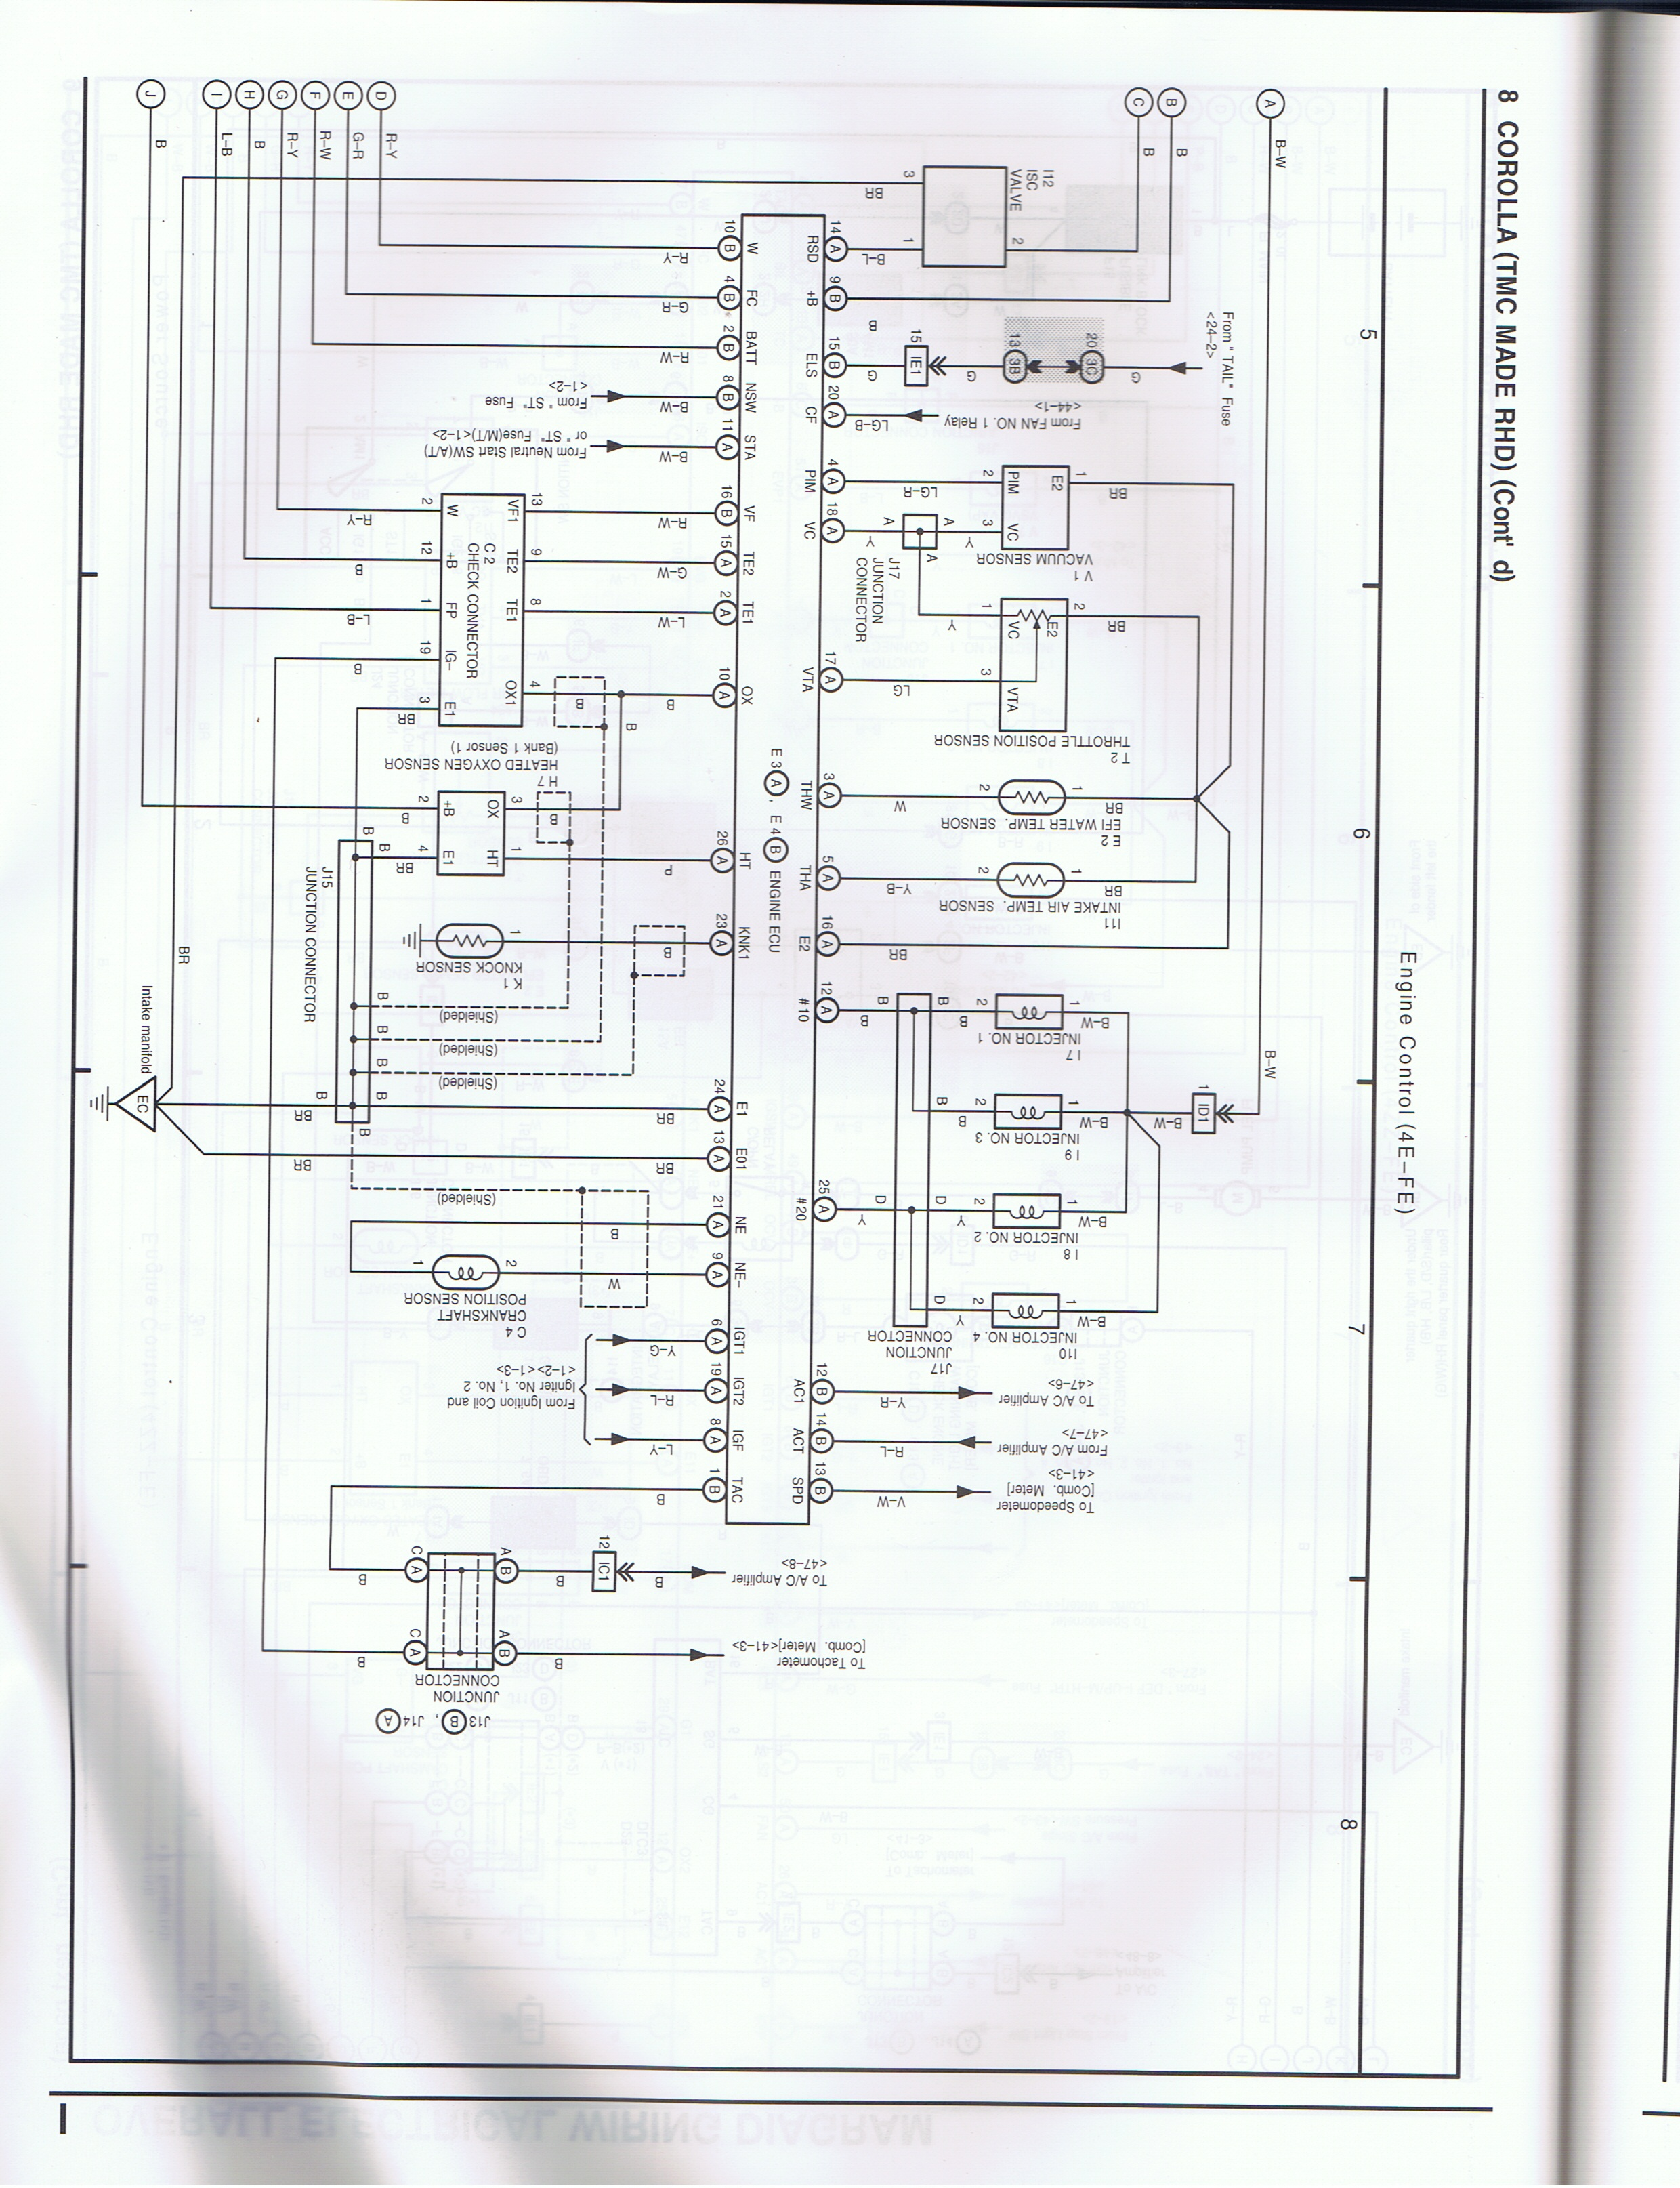 4age 20v silvertop wiring diagram wirdig 4age 20v wiring diagram schematic moreover 4age 20v